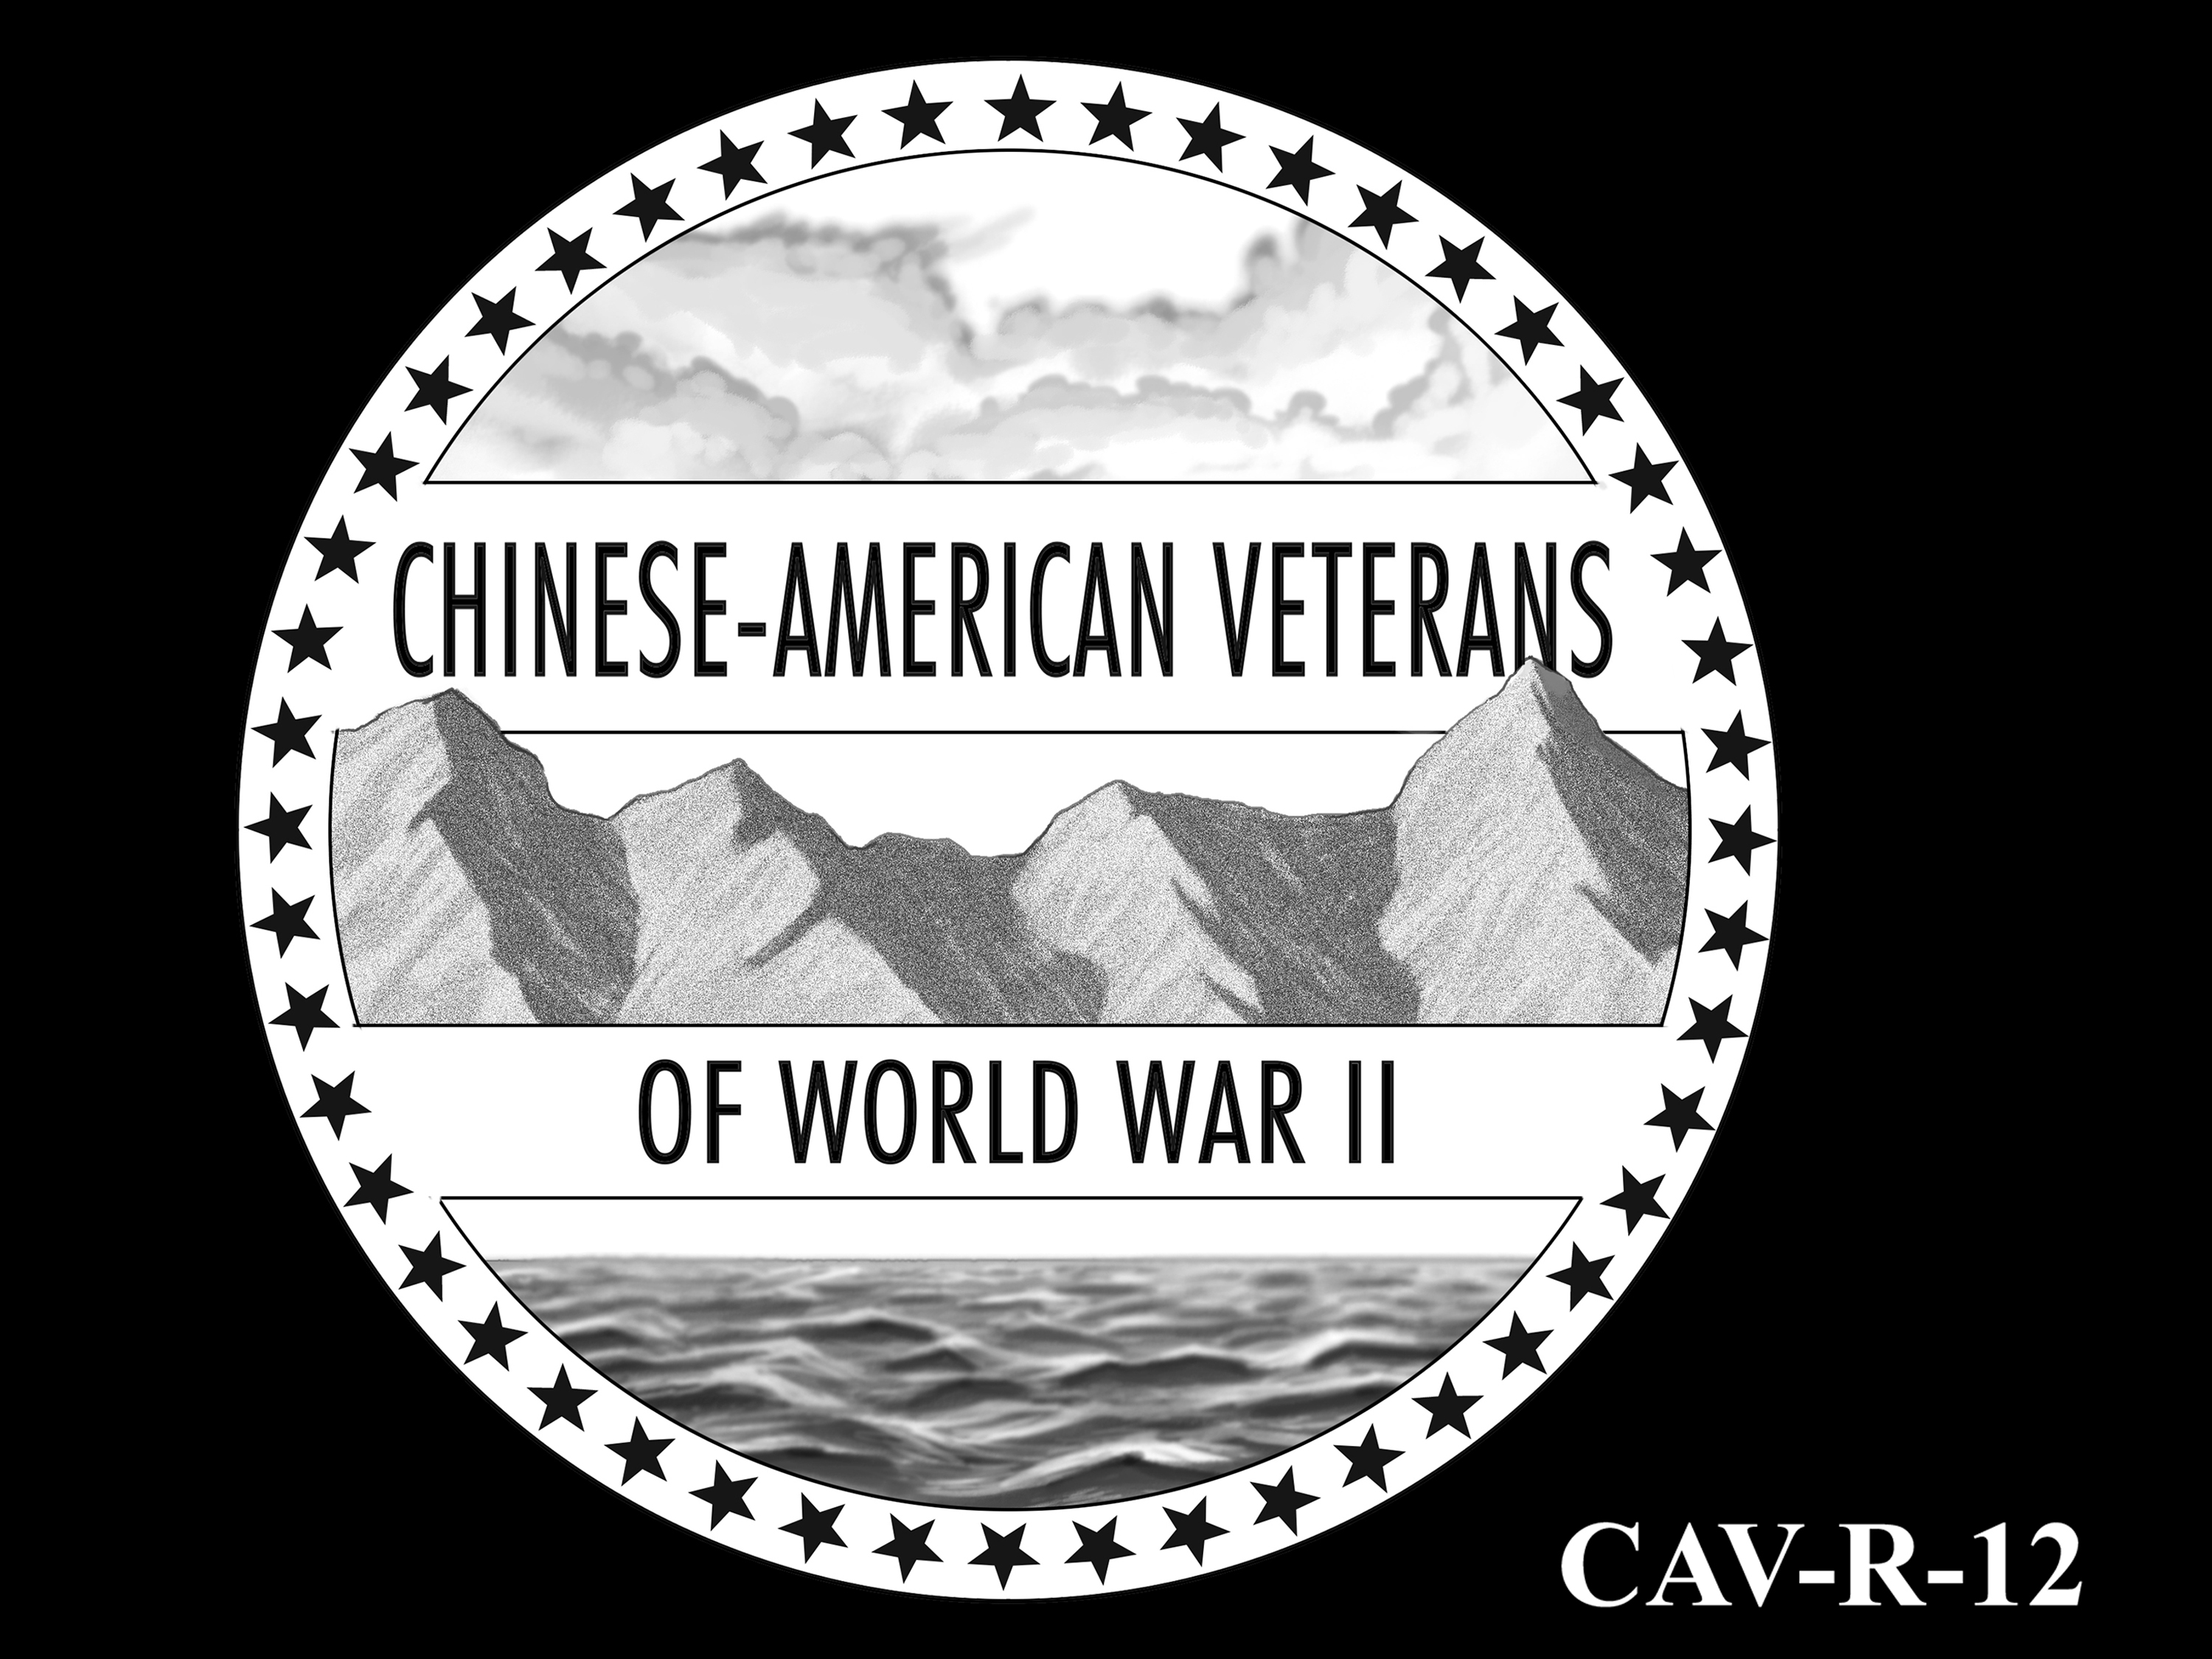 CAV-R-12 -- Chinese-American Veterans of World War II Congressional Gold Medal - Reverse